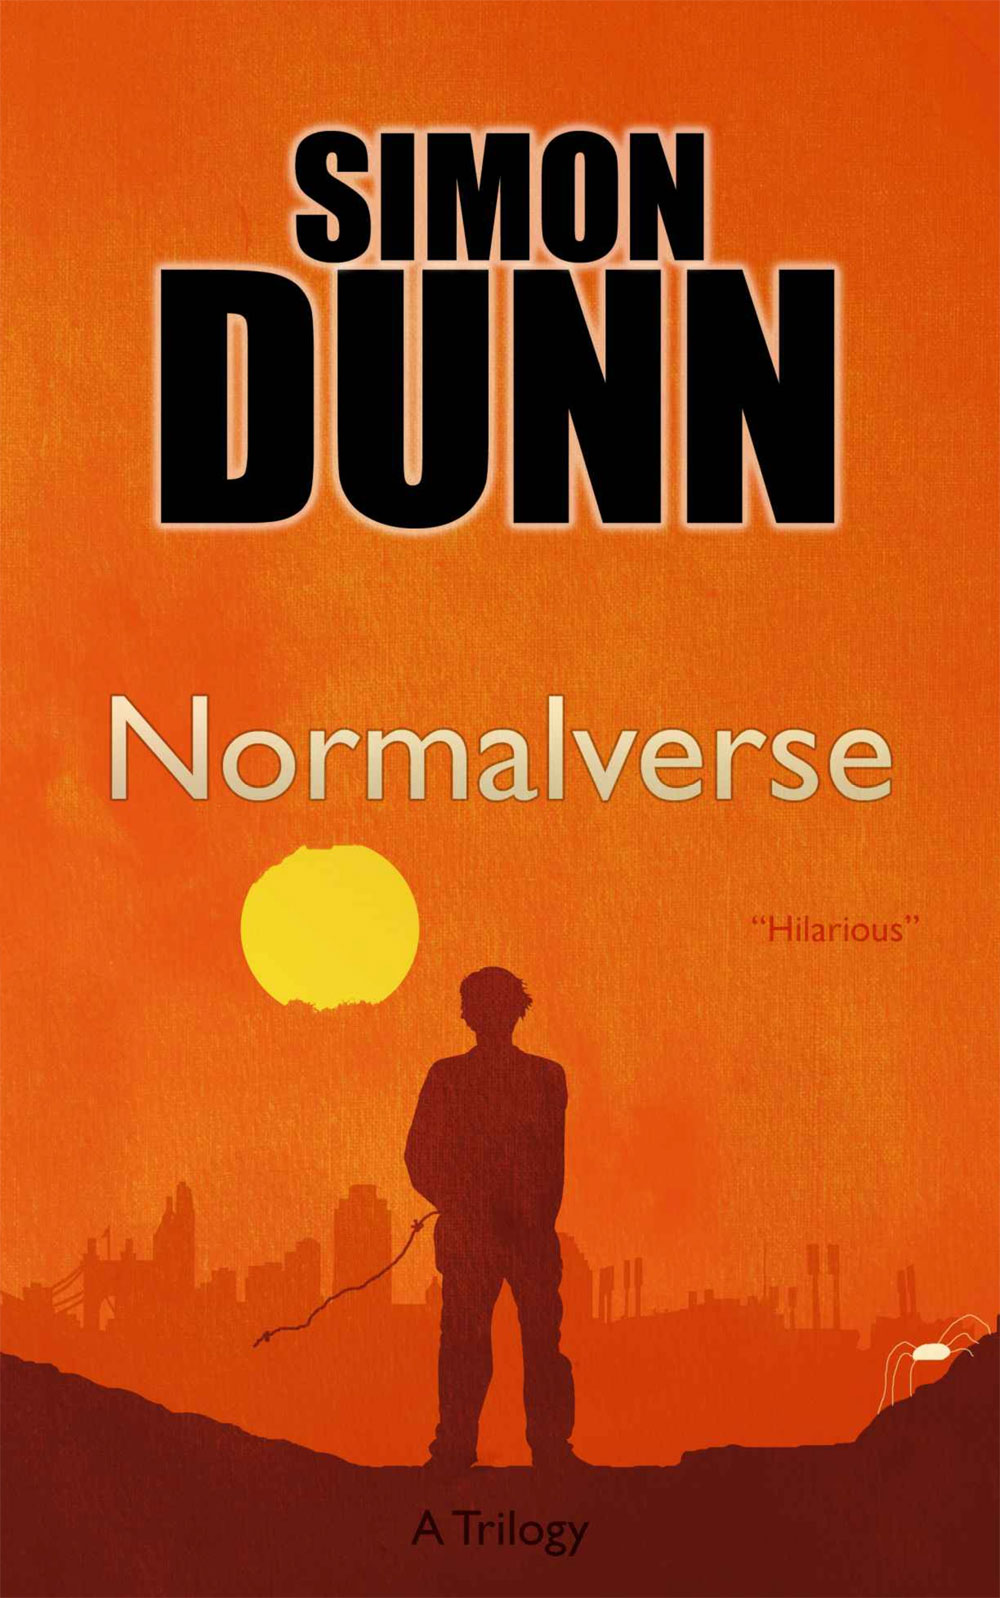 Normalverse is a Free Kindle Book with meh Reviews